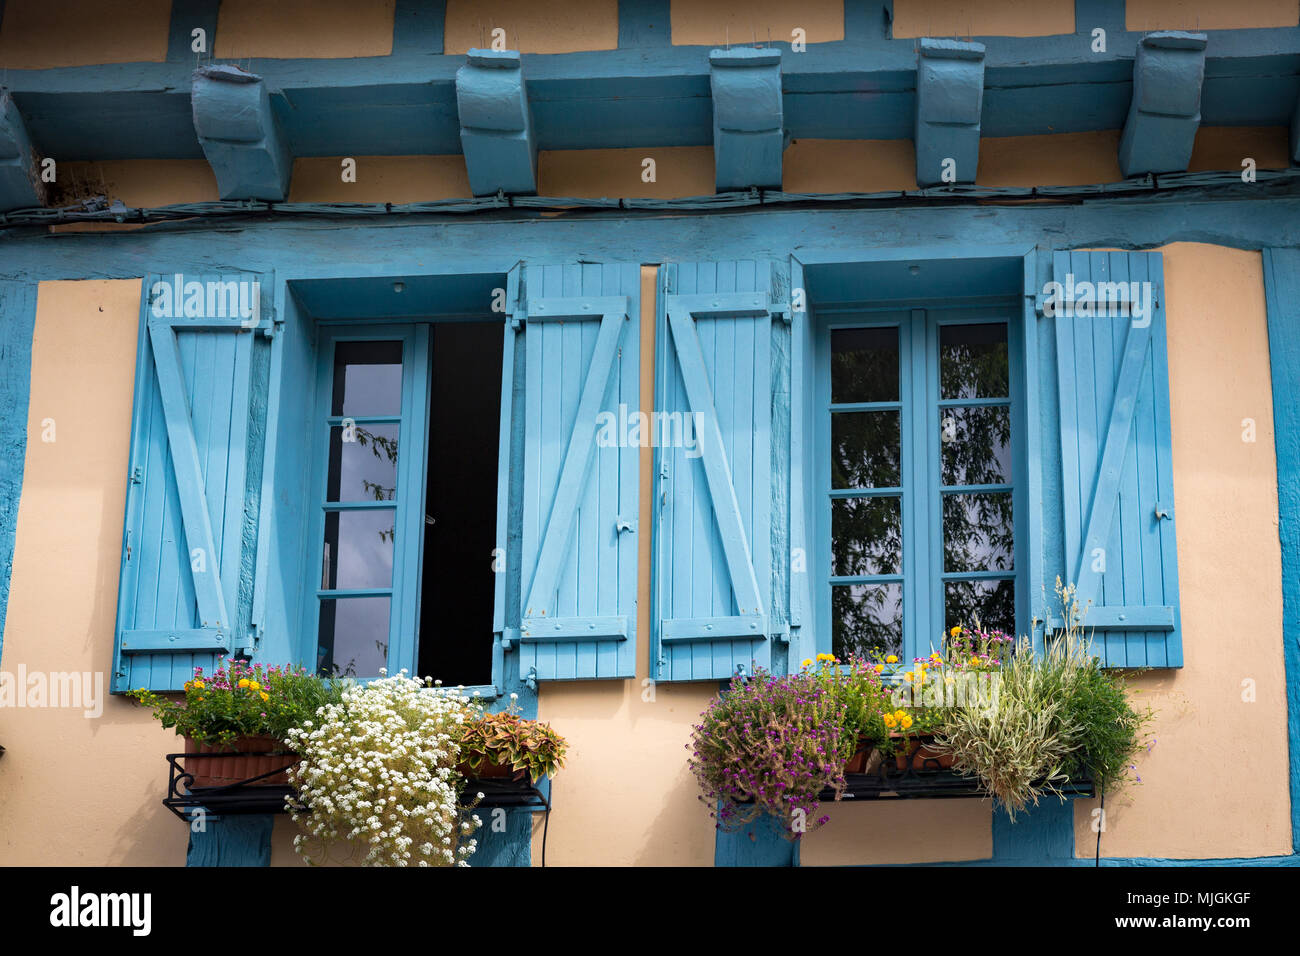 Blue shuttered windows in The medieval town of Josslin in Brittany, France. - Stock Image